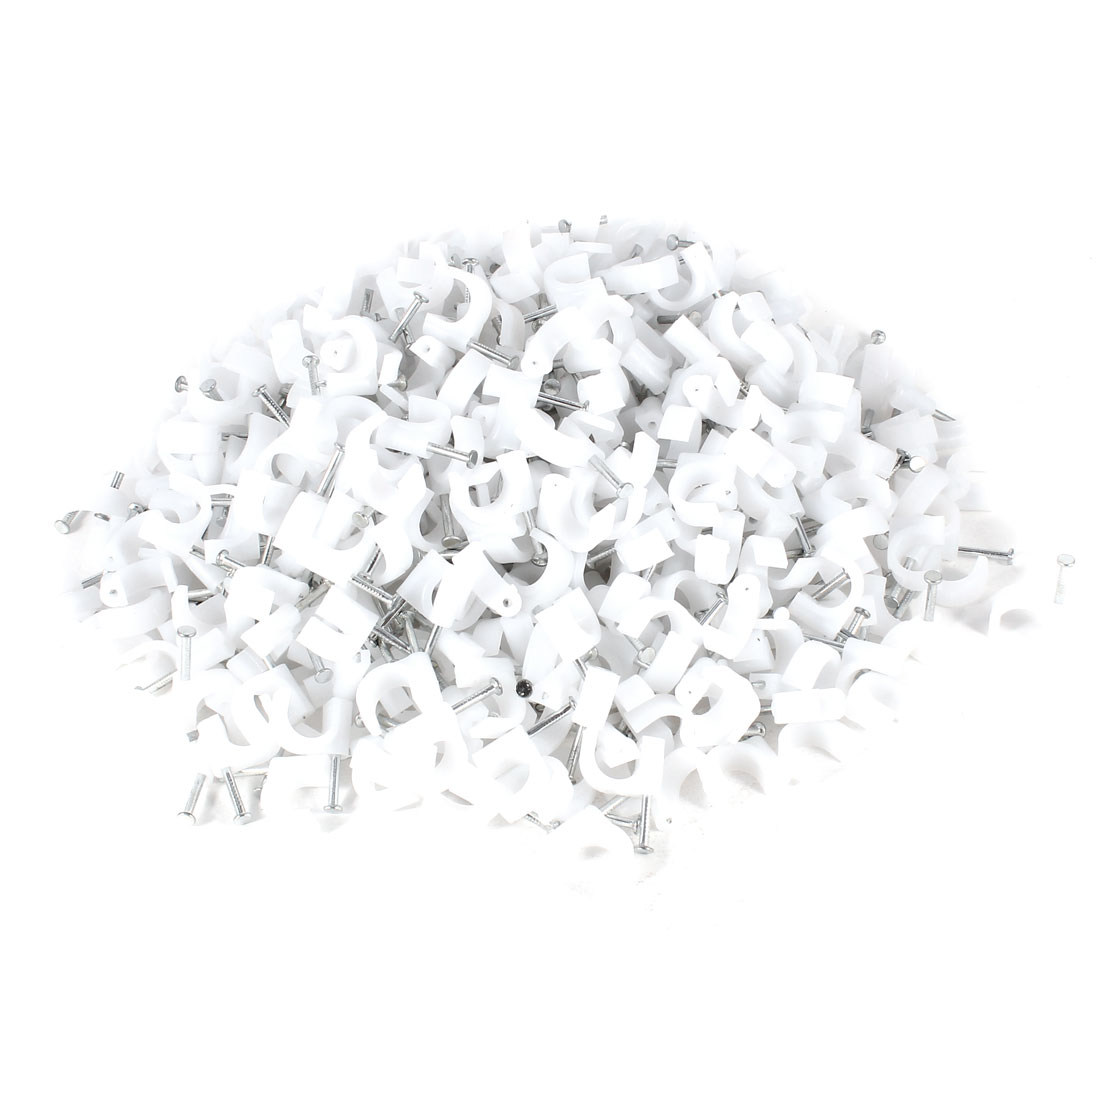 500 Pcs White 10mm Diameter Coax Cable Inserting Circle Nail Clips